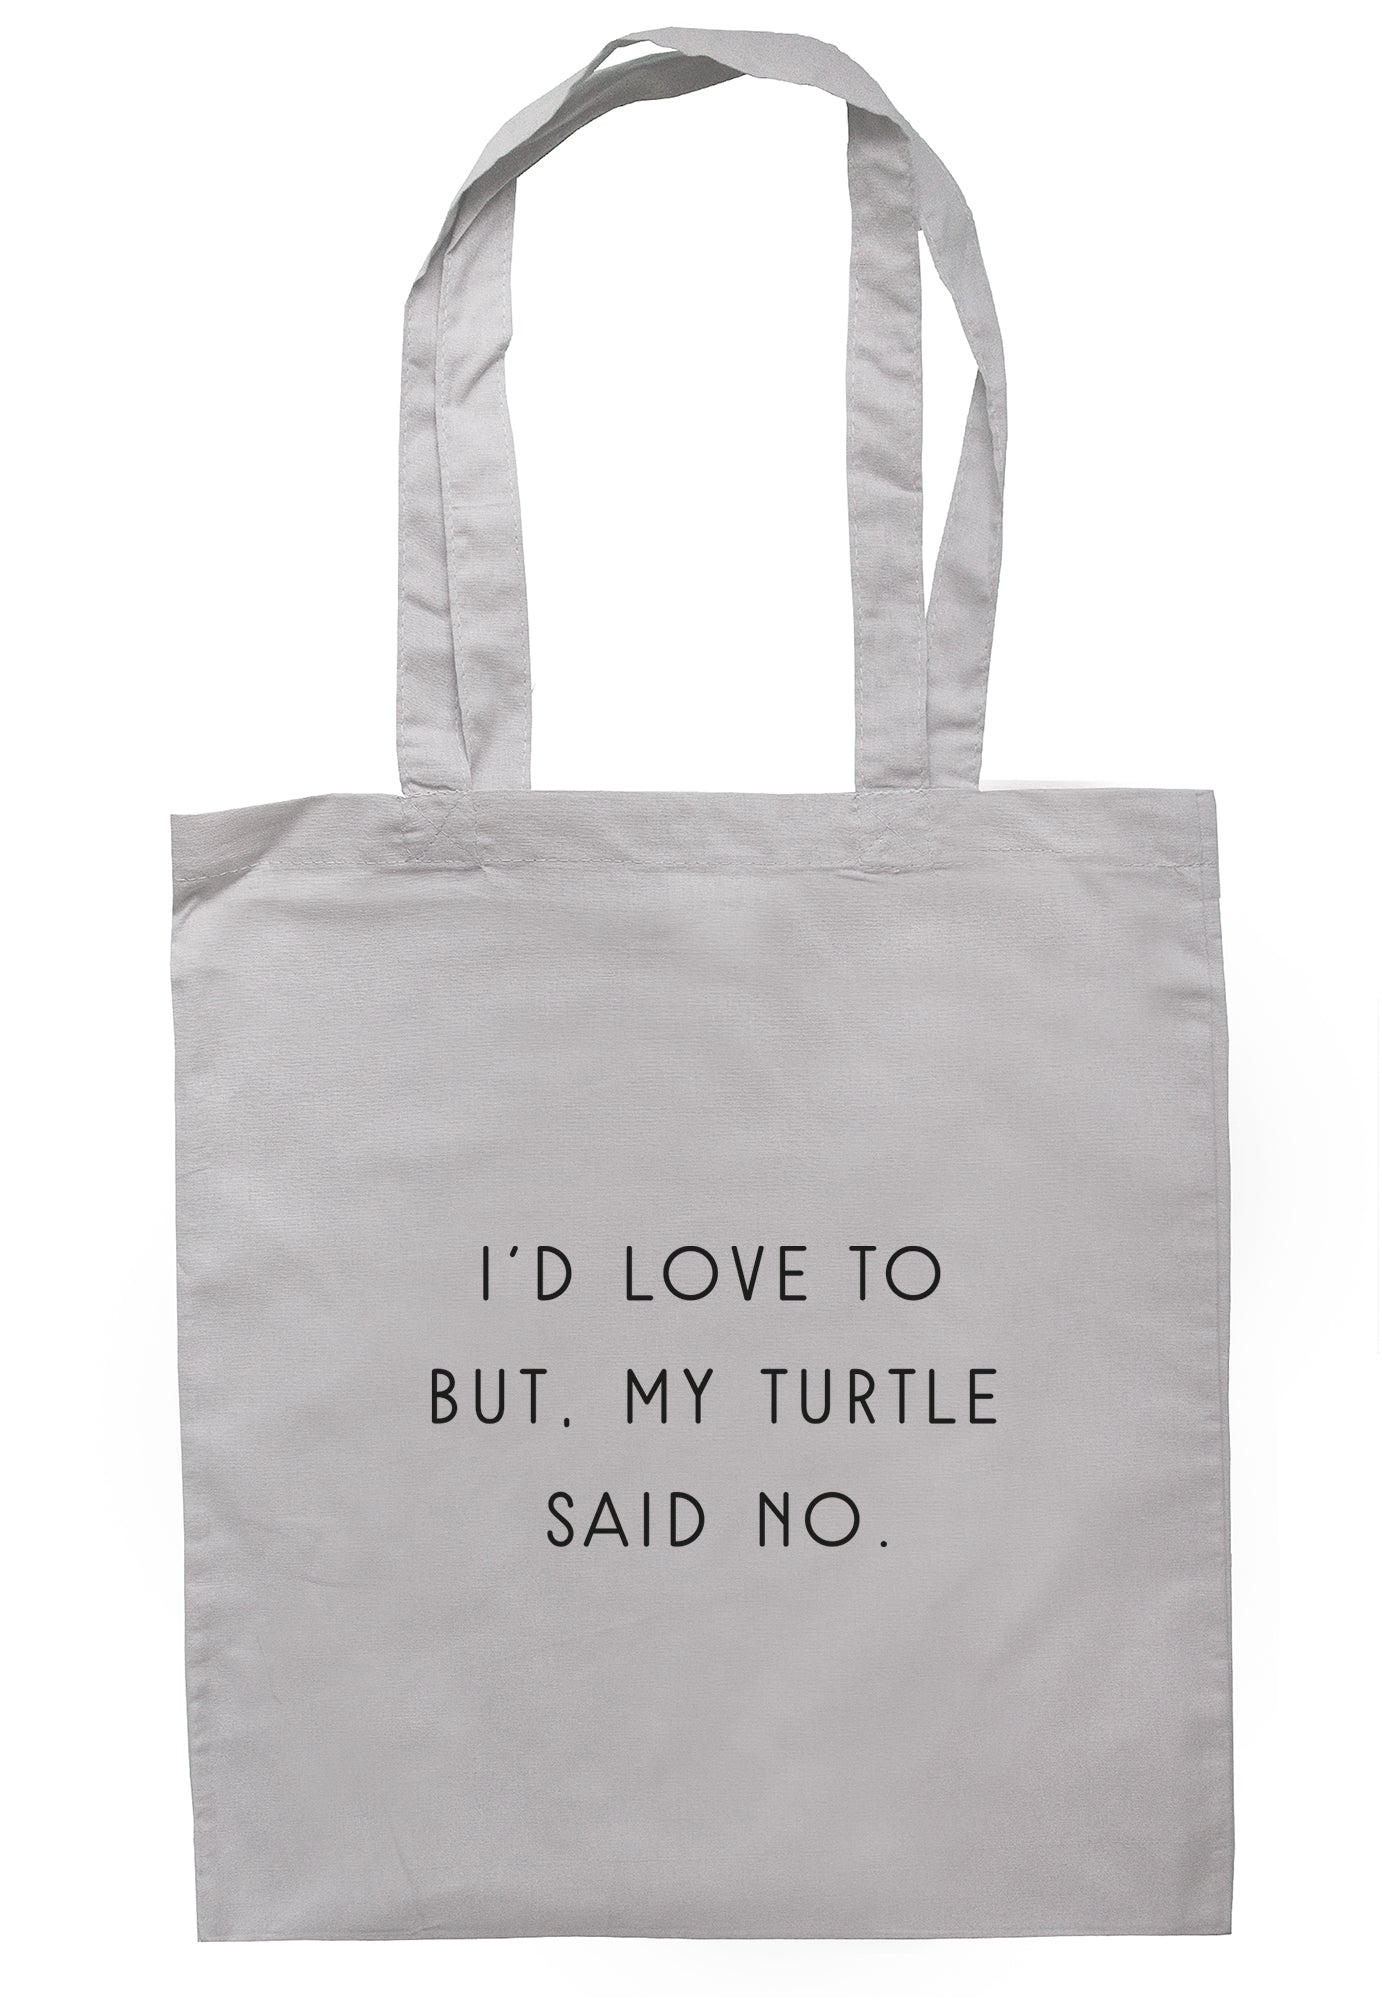 I'd Love To But, My Turtle Said No Tote Bag S1065 - Illustrated Identity Ltd.